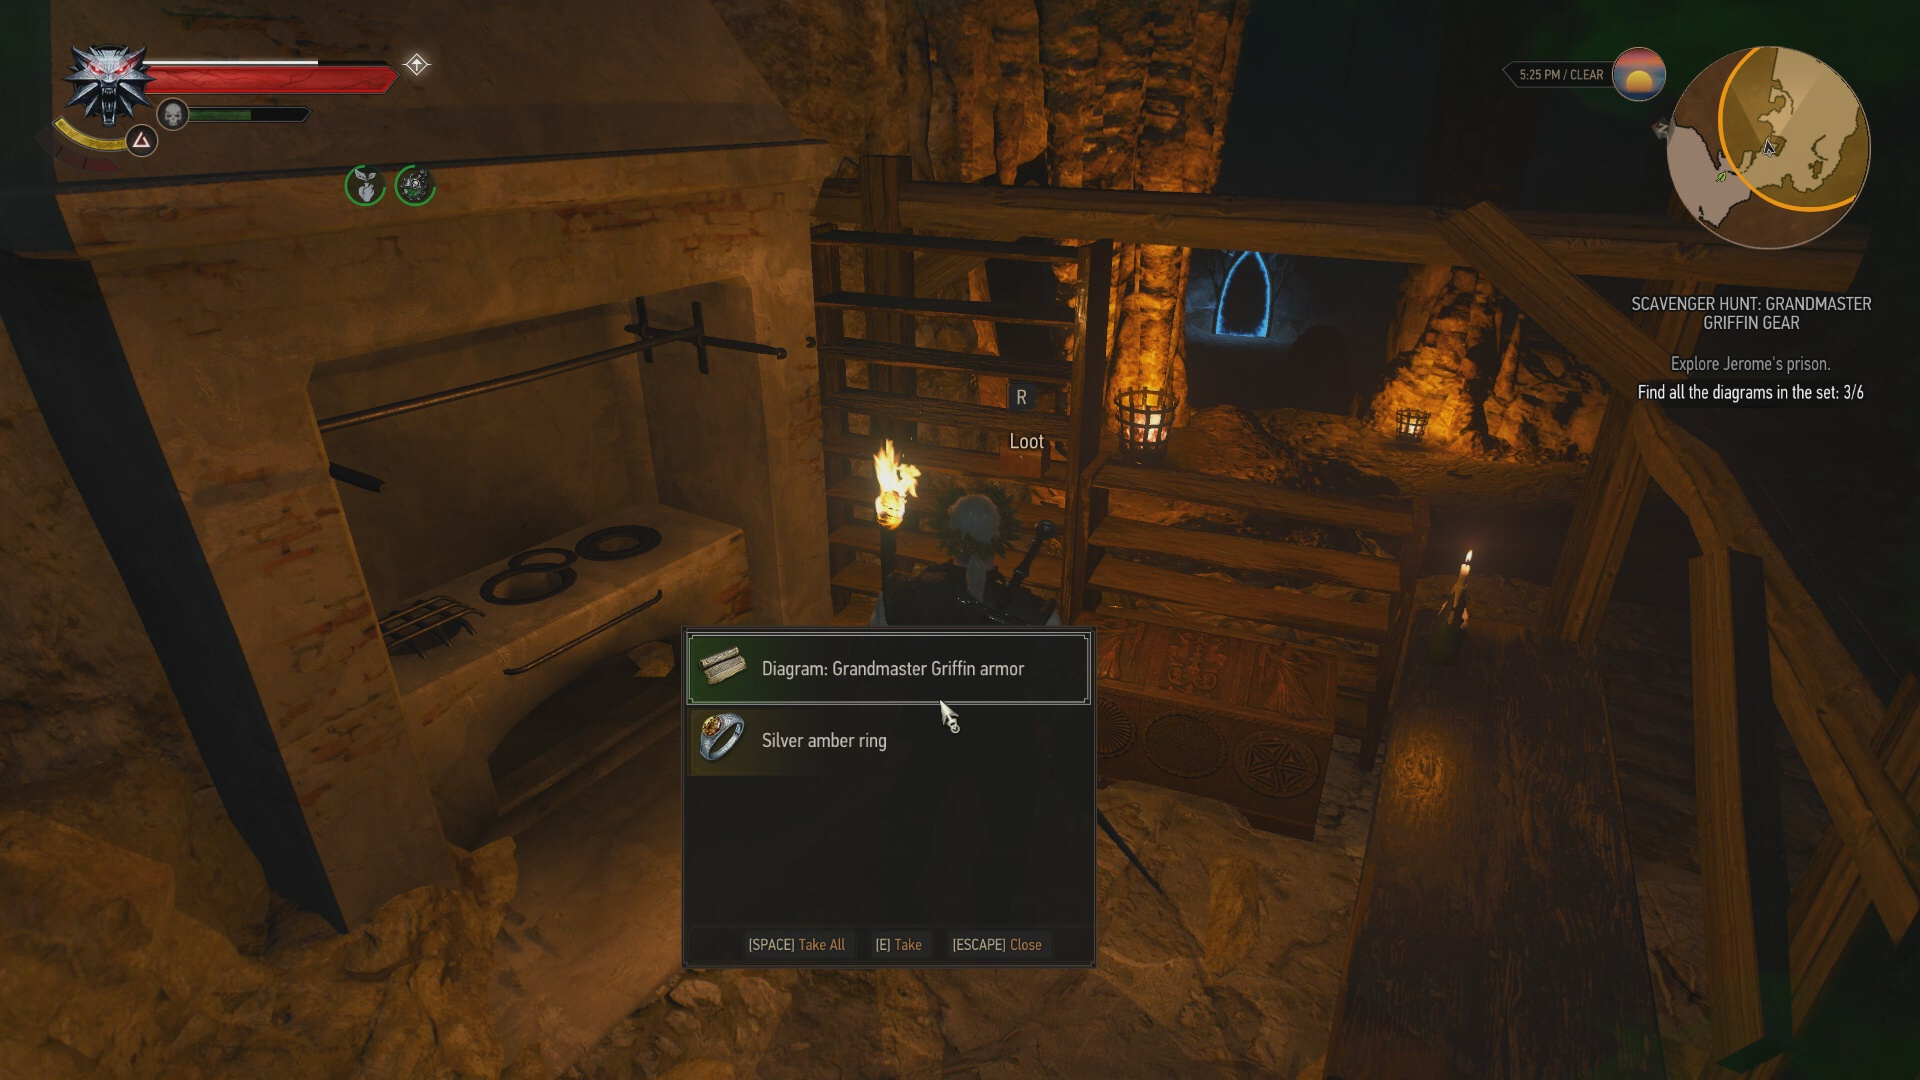 The Witcher 3 How To Get The Grandmaster Griffin Gear Usgamer